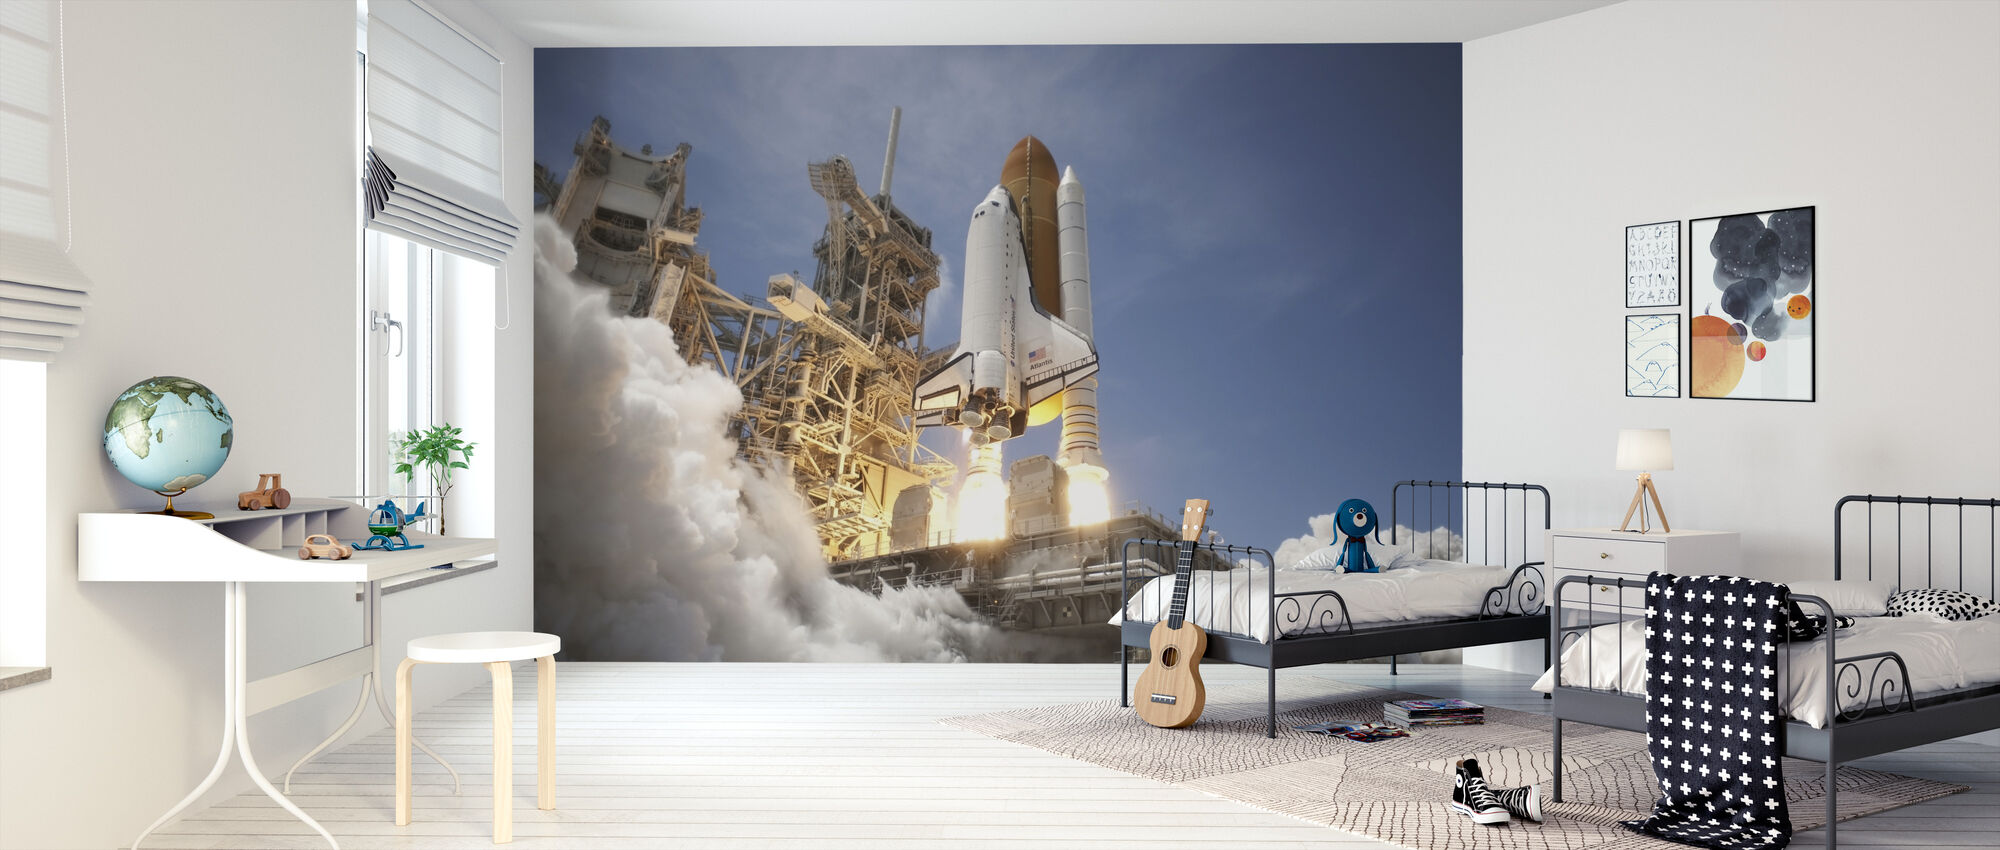 Space Shuttle - Wallpaper - Kids Room